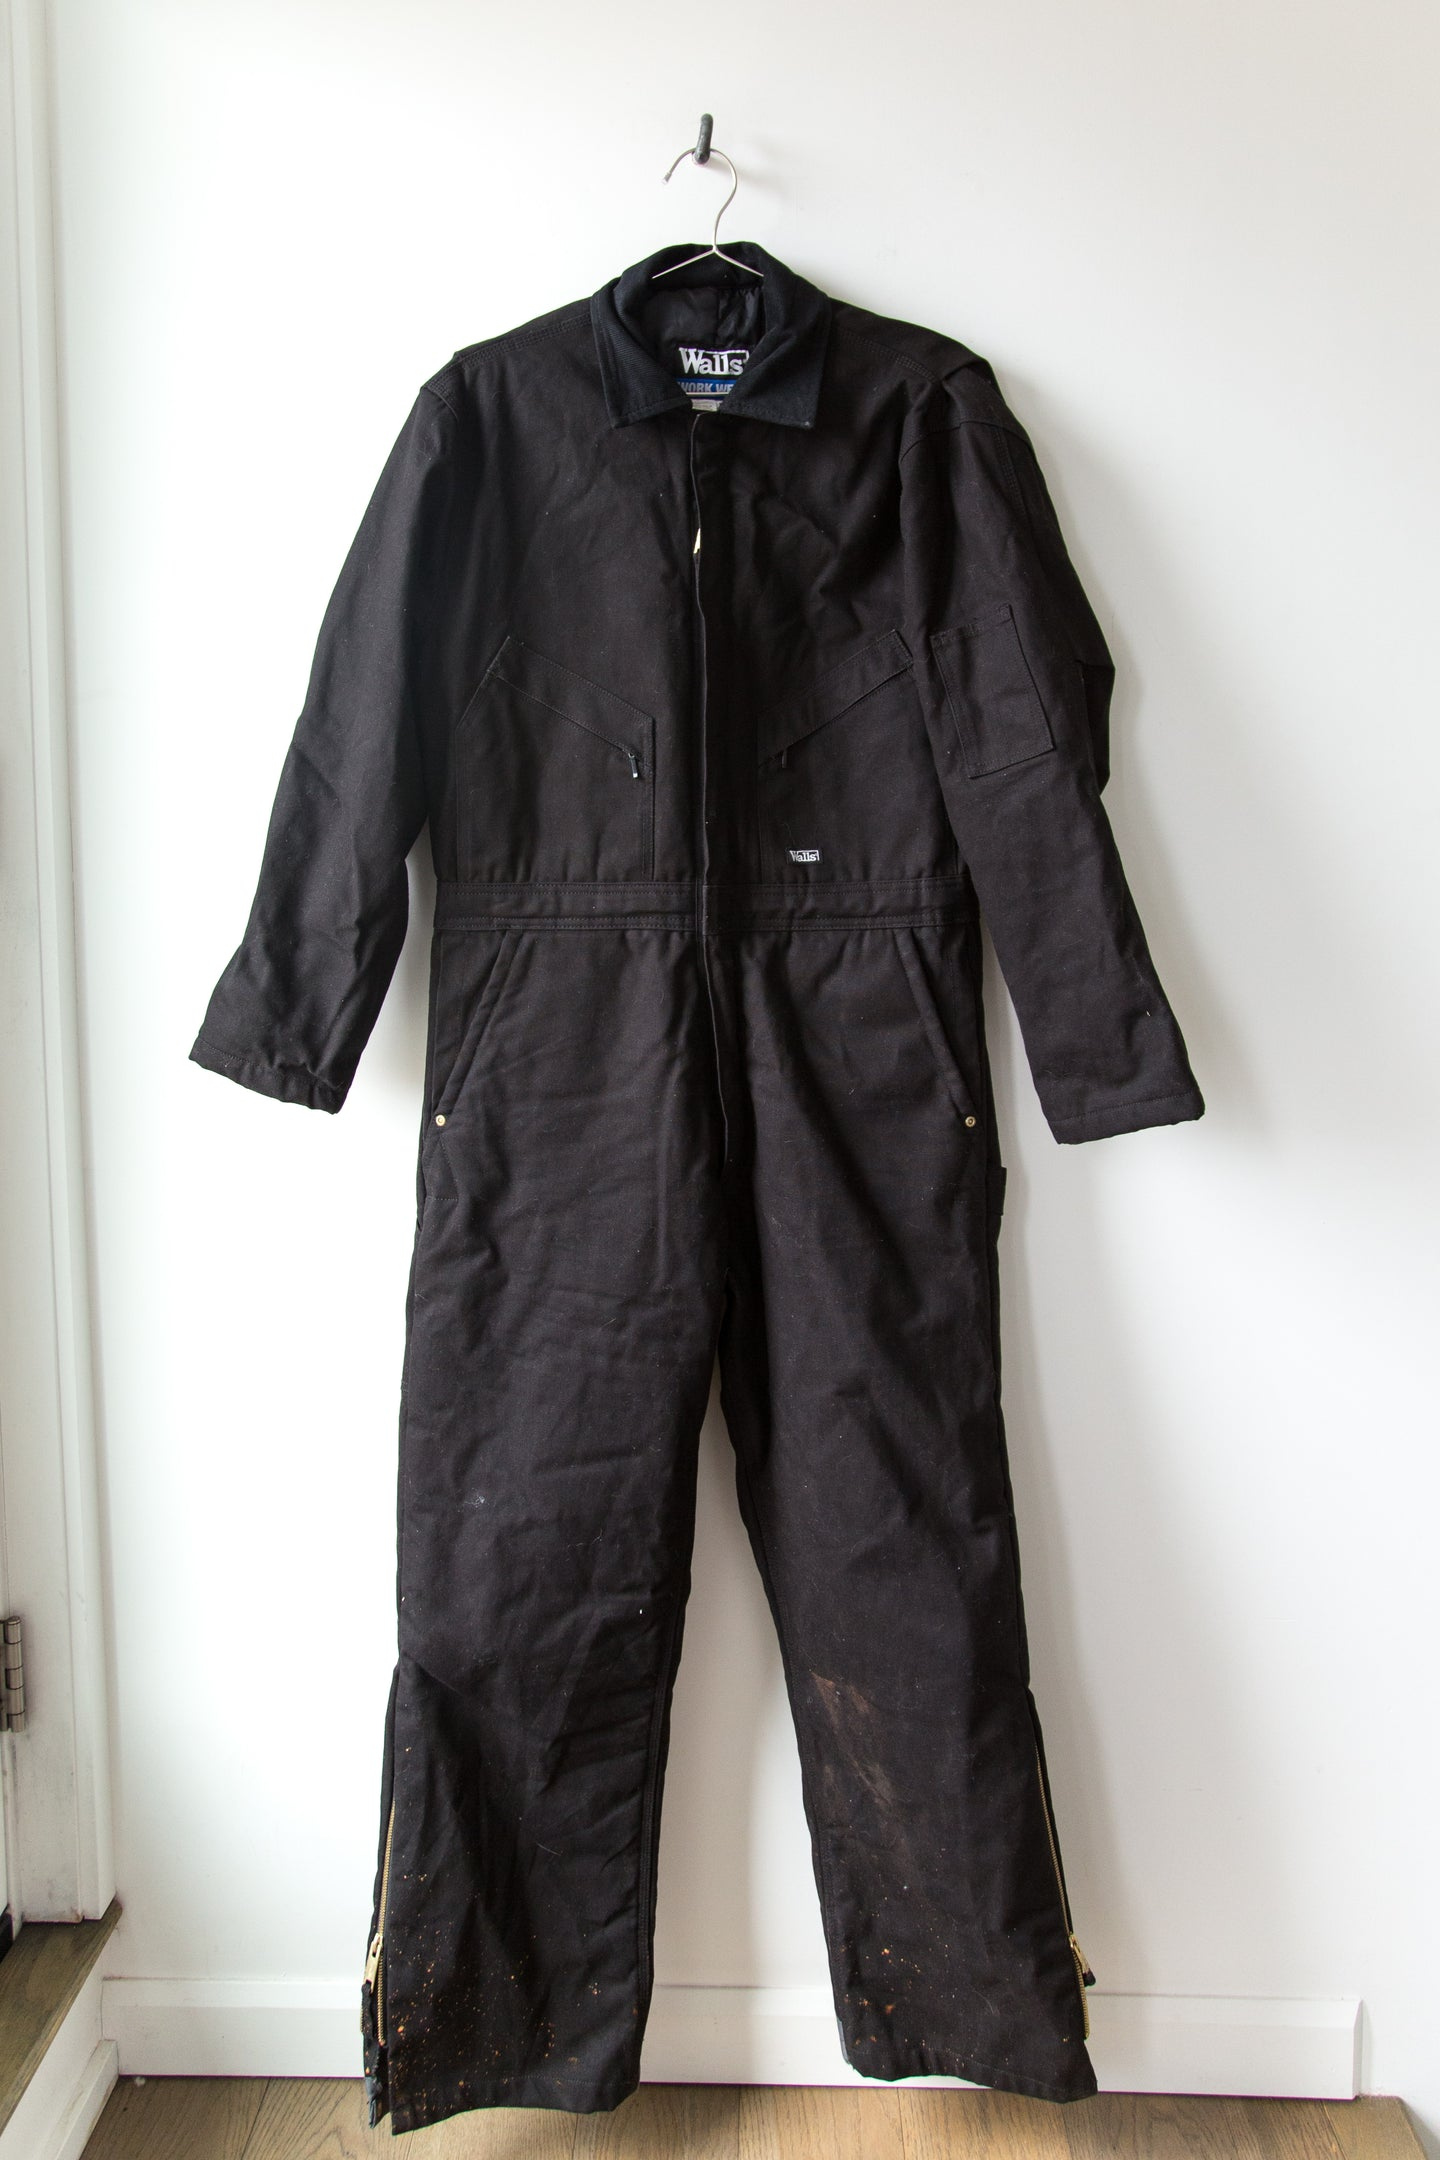 Walls Black Insulated Coveralls